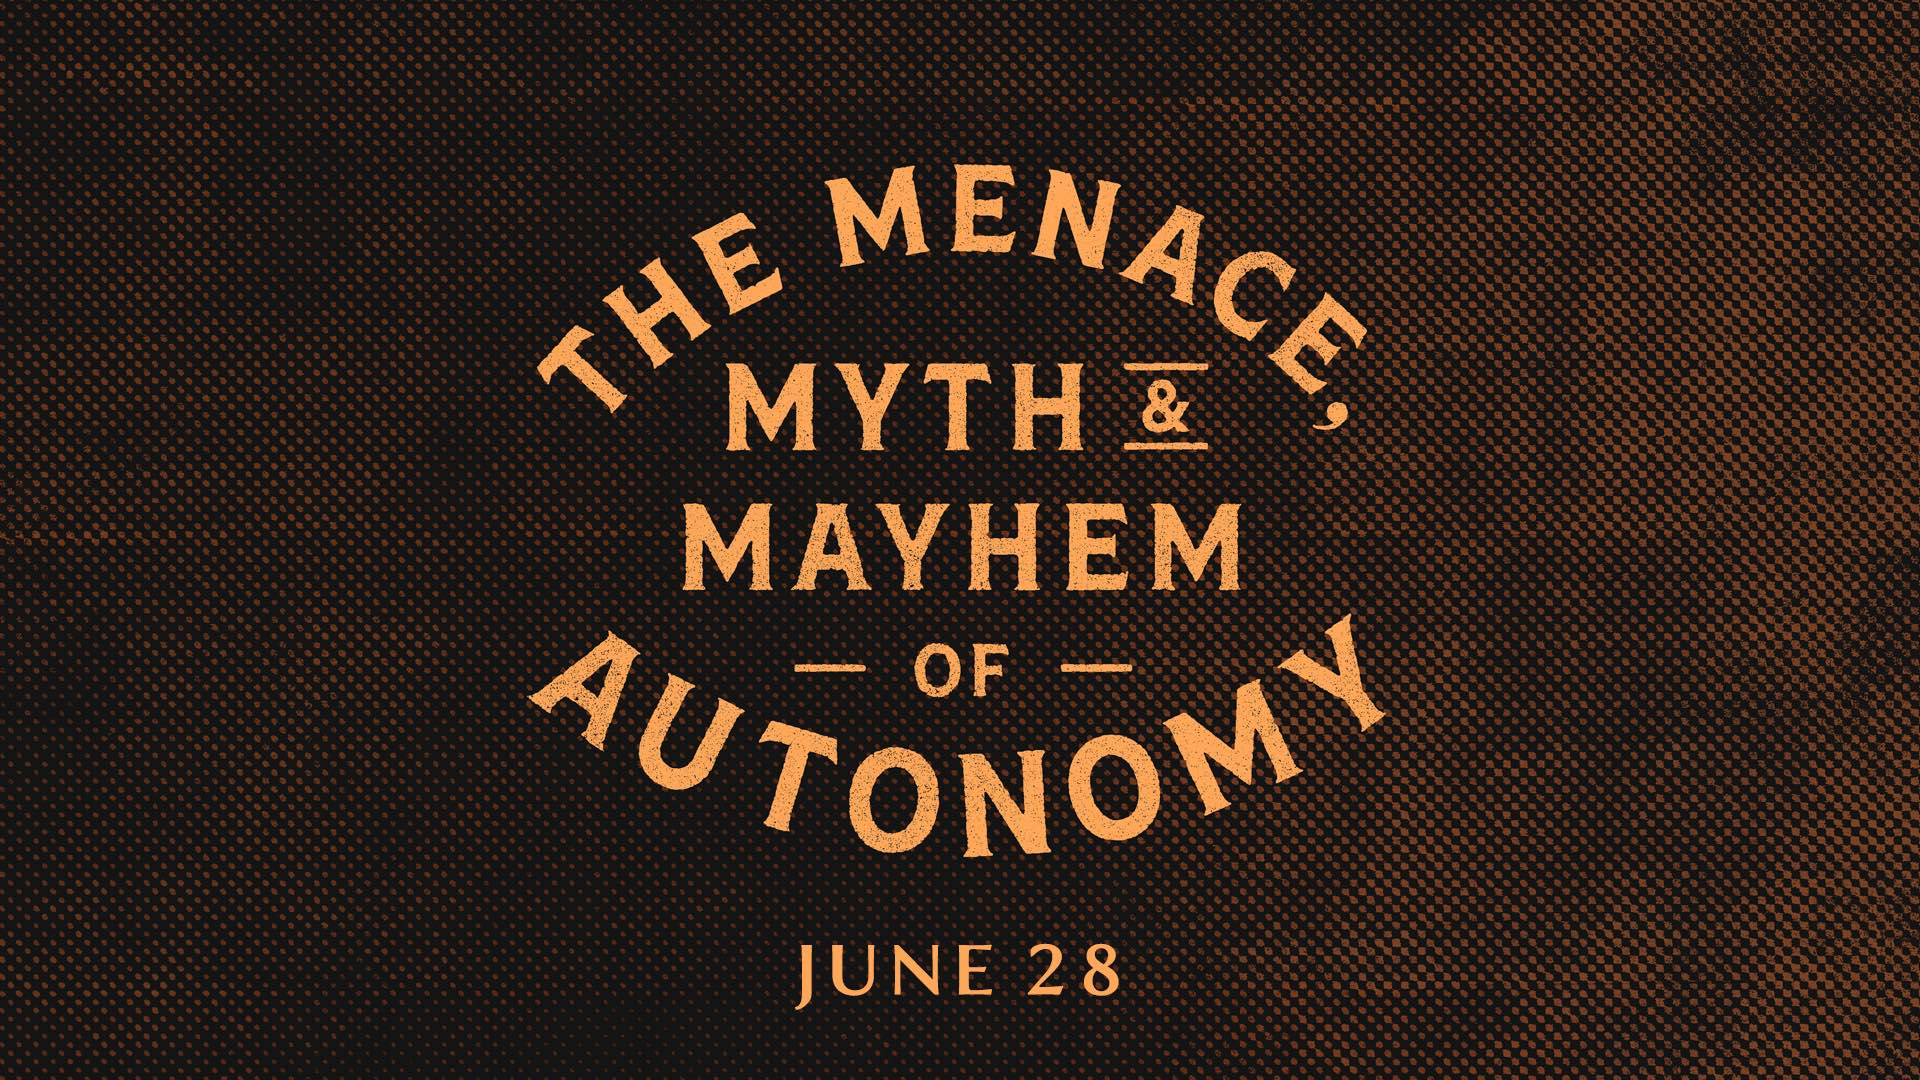 The Menace, Myth & Mayhem of Autonomy